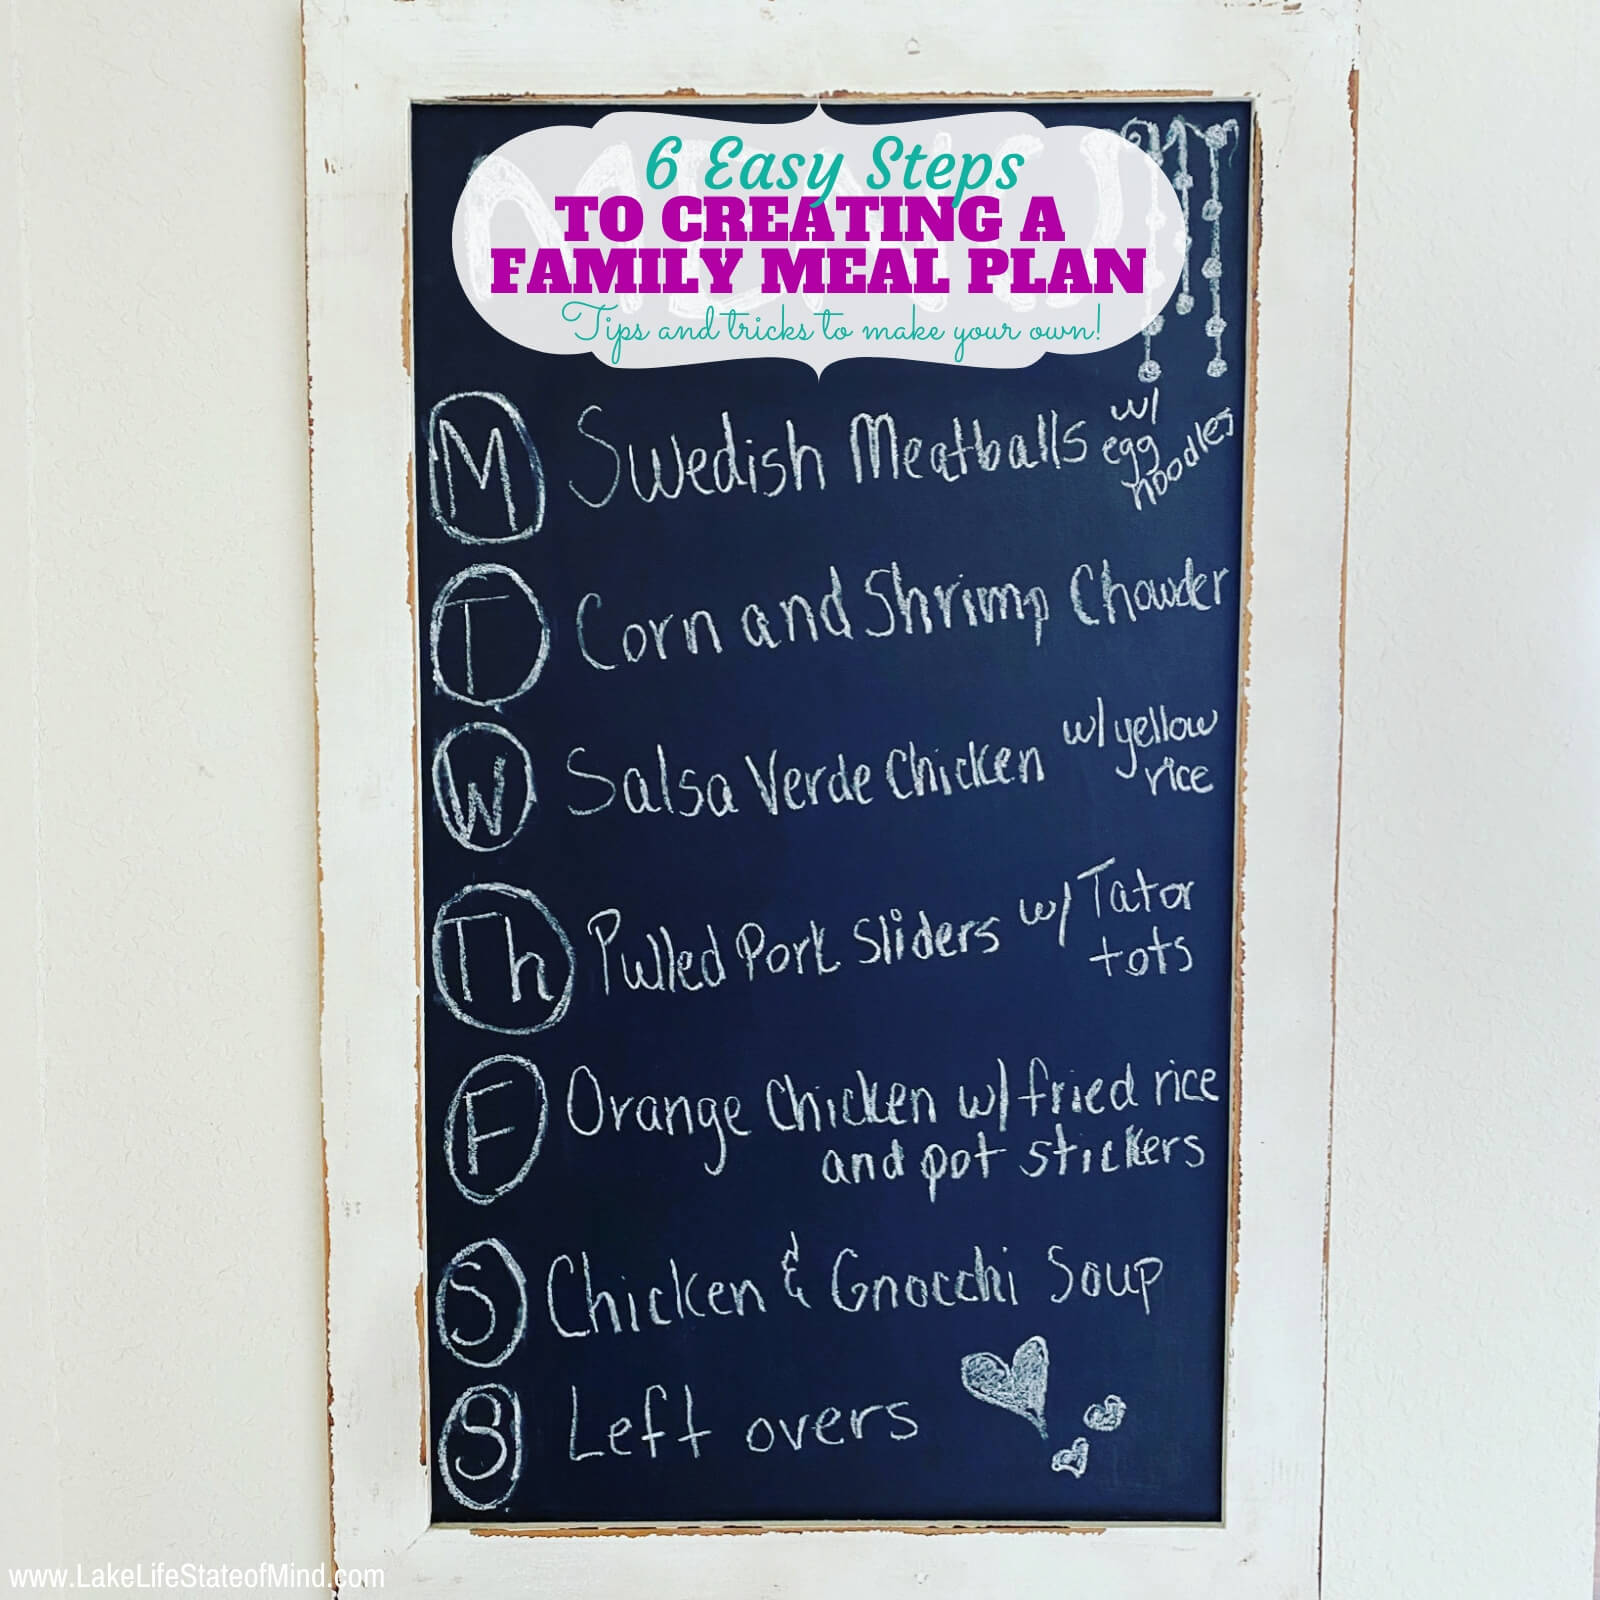 6 Easy Steps to Creating a Family Meal Plan